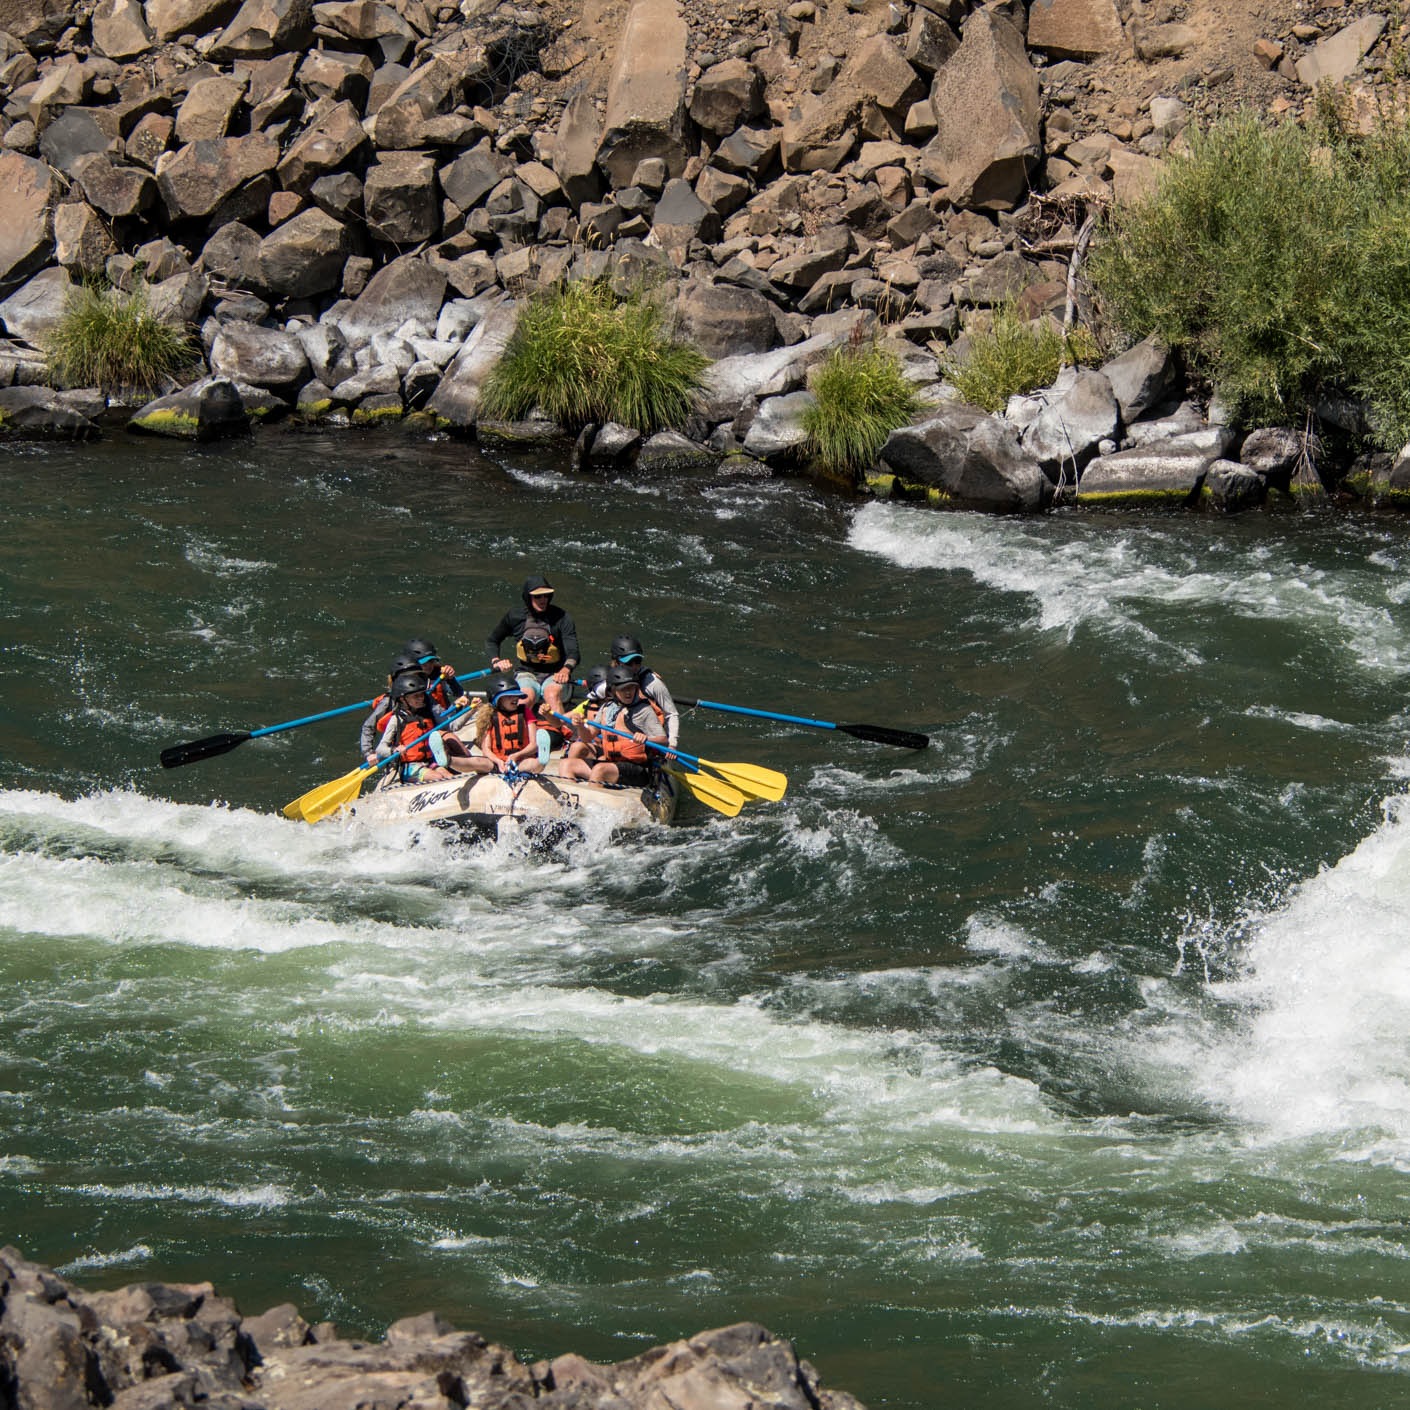 Pacific Northwest Discovery rock whitewater rafting